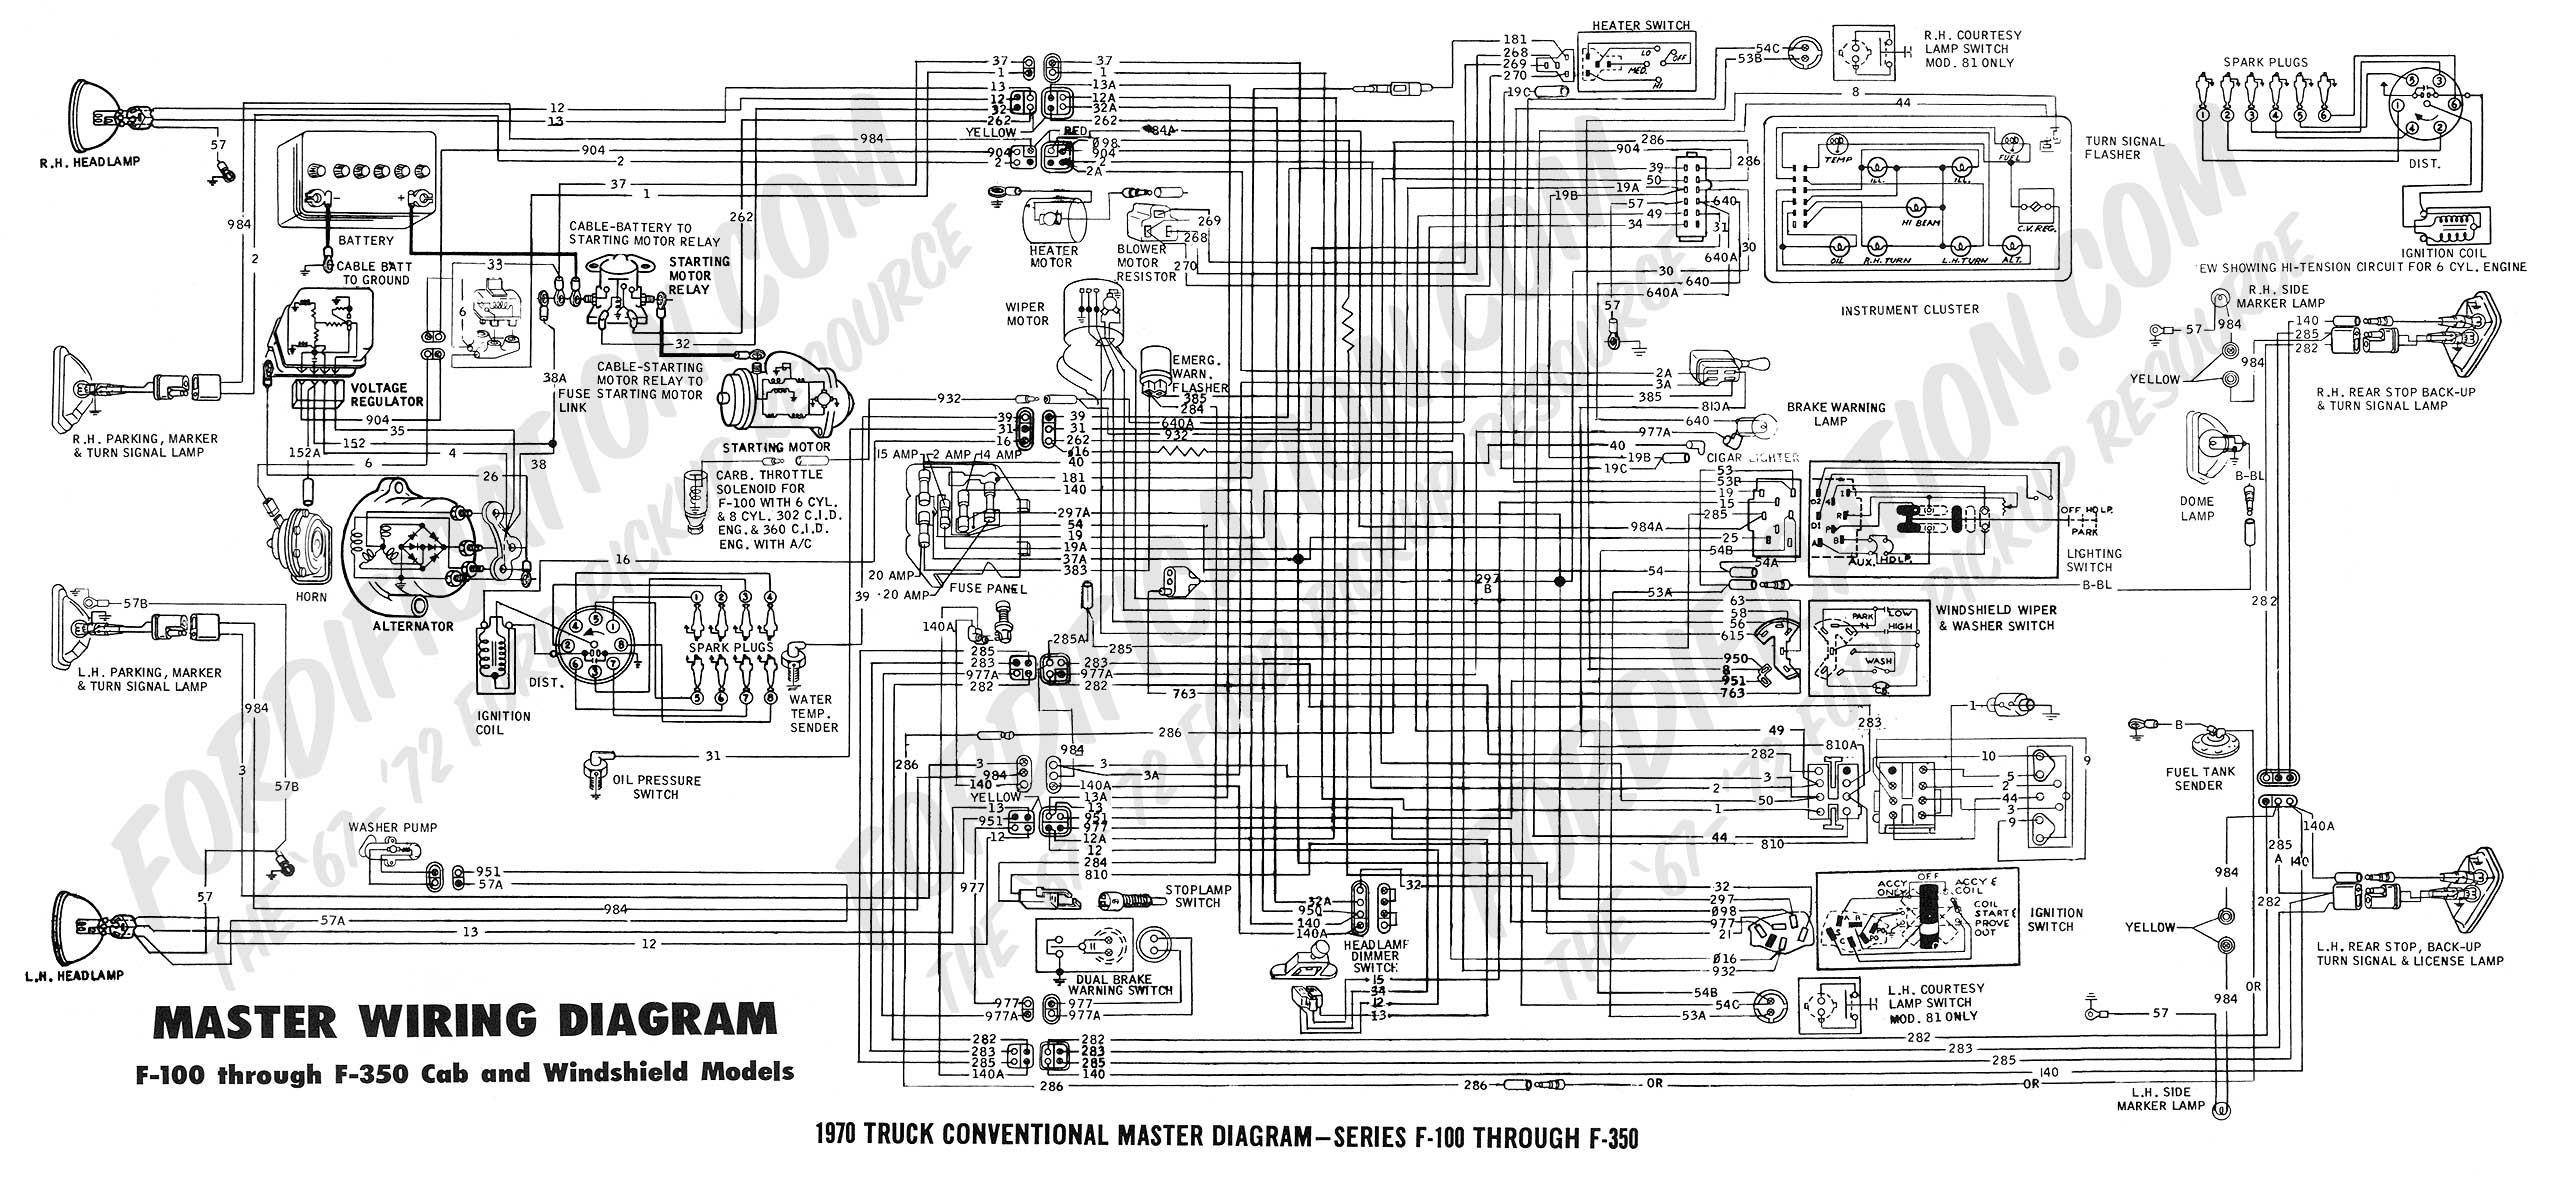 wiring diagram 70_master ford truck technical drawings and schematics section h wiring old ford wiring harness at crackthecode.co